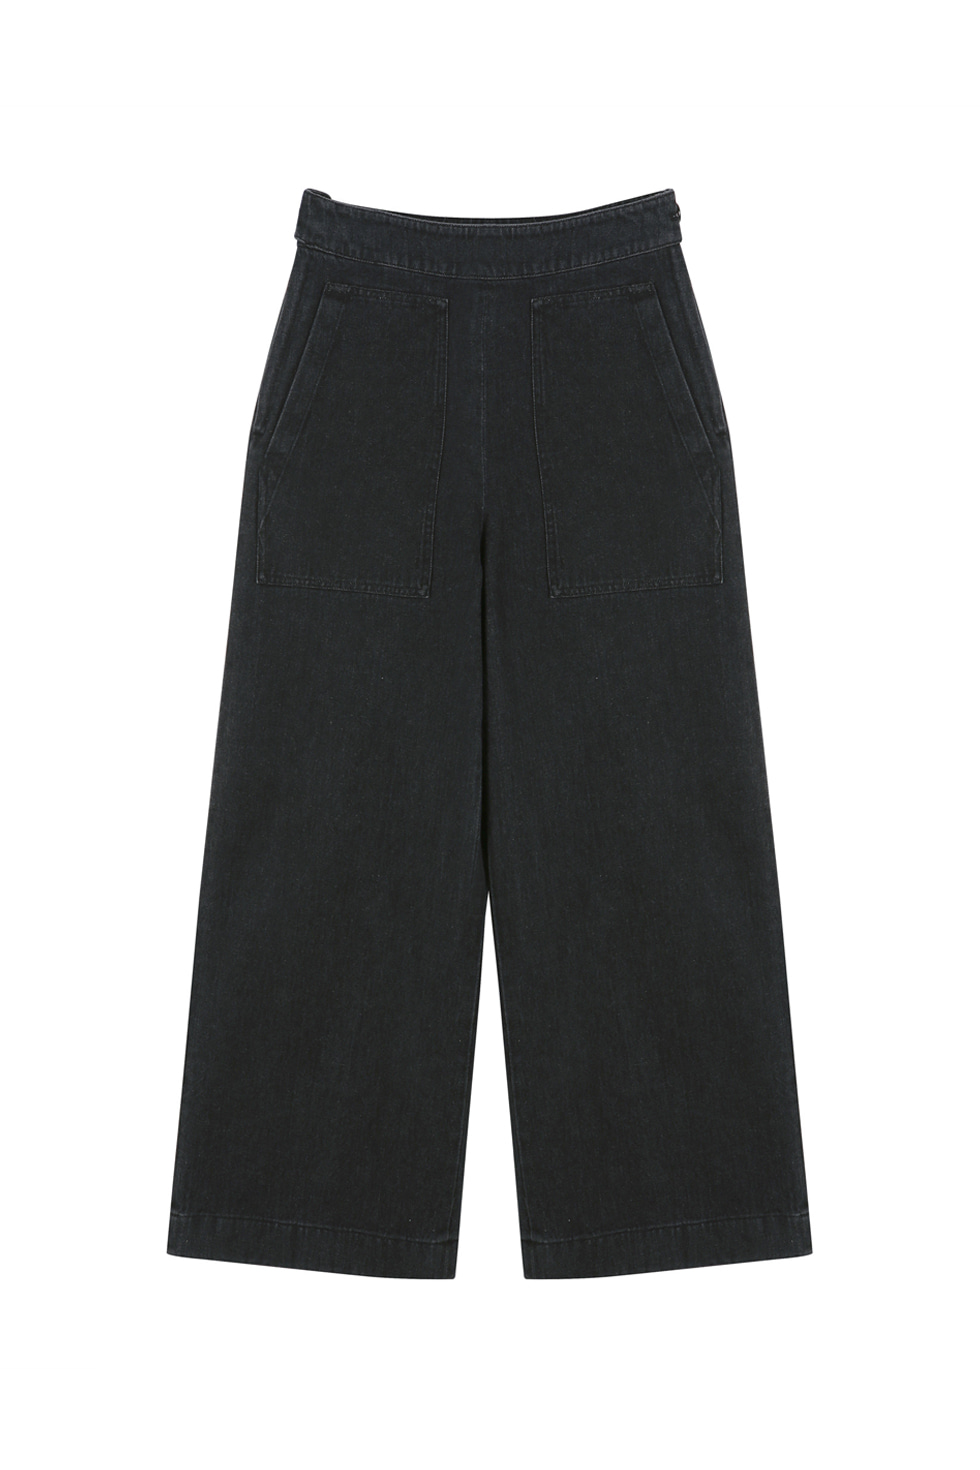 WIDE PANTS - BLACK